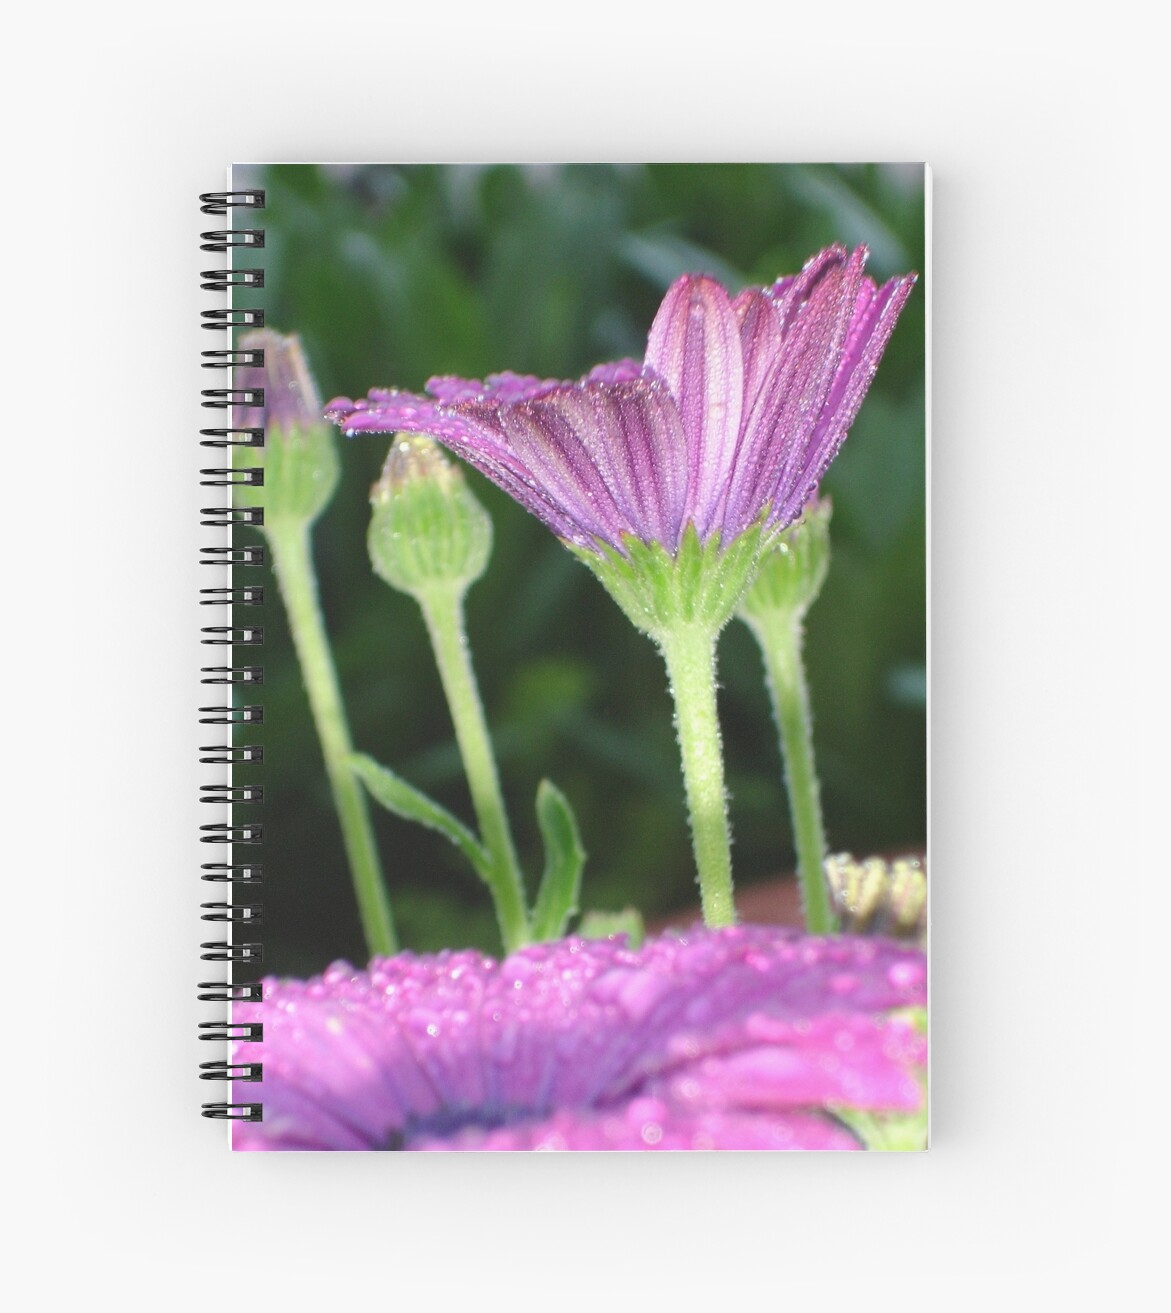 Purple And Pink Daisy Flower in Full Bloom by taiche